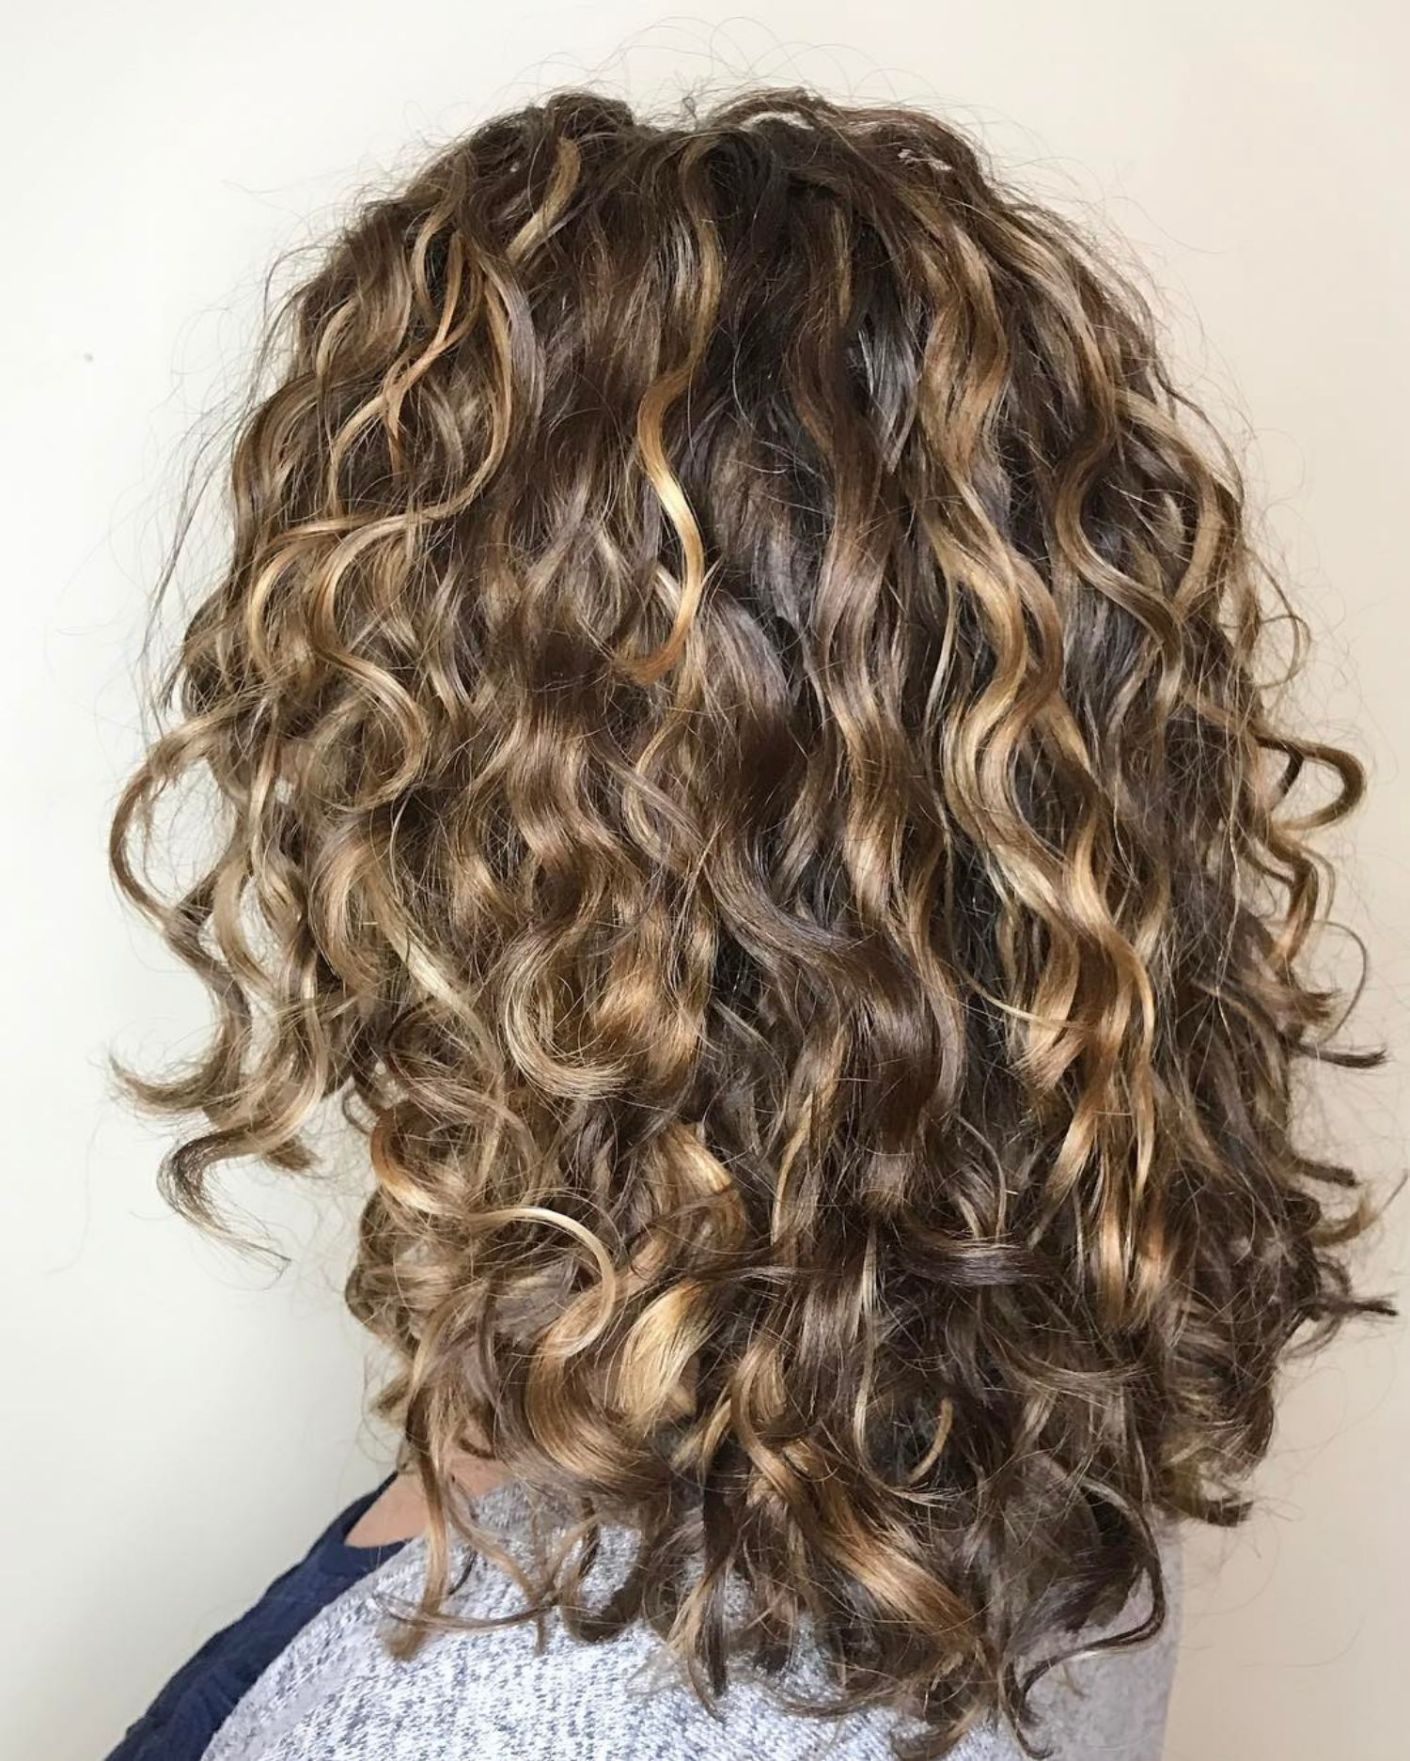 Curly Brown Hair With Dark Blonde Highlights In 2020 Curly Hair Styles Naturally Curly Hair Styles Highlights Curly Hair